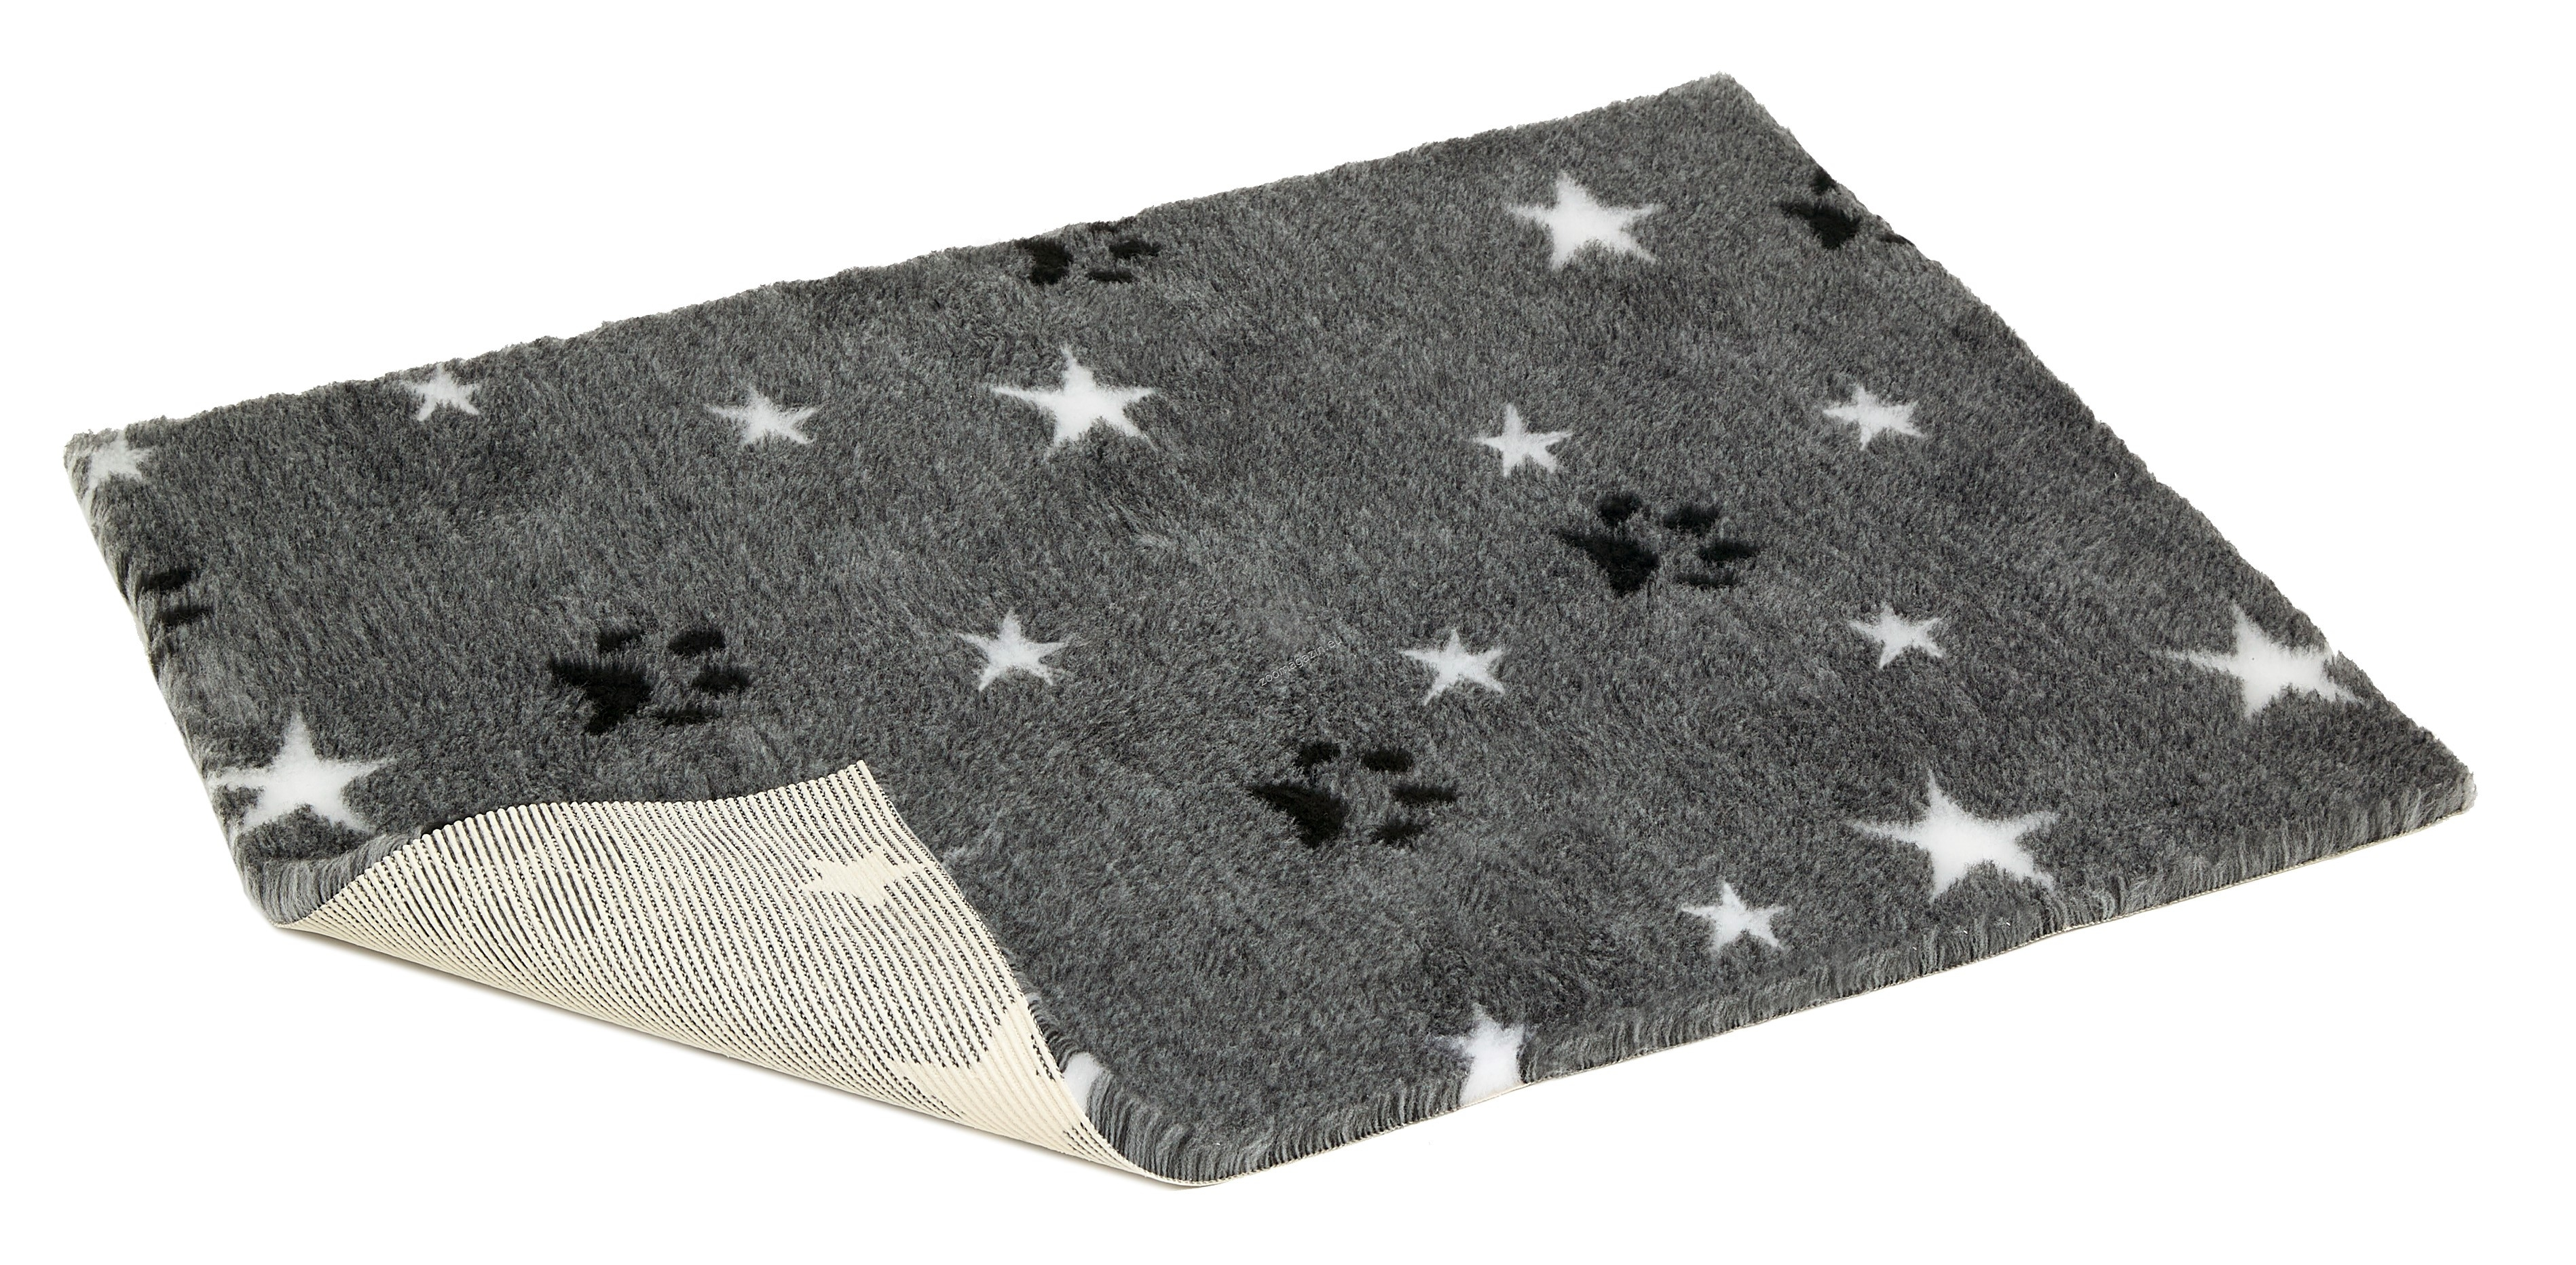 Vetbed Non-Slip Lime Grey with Stars and Paws - мека постелка със слой против пързаляне 110 / 75 см.